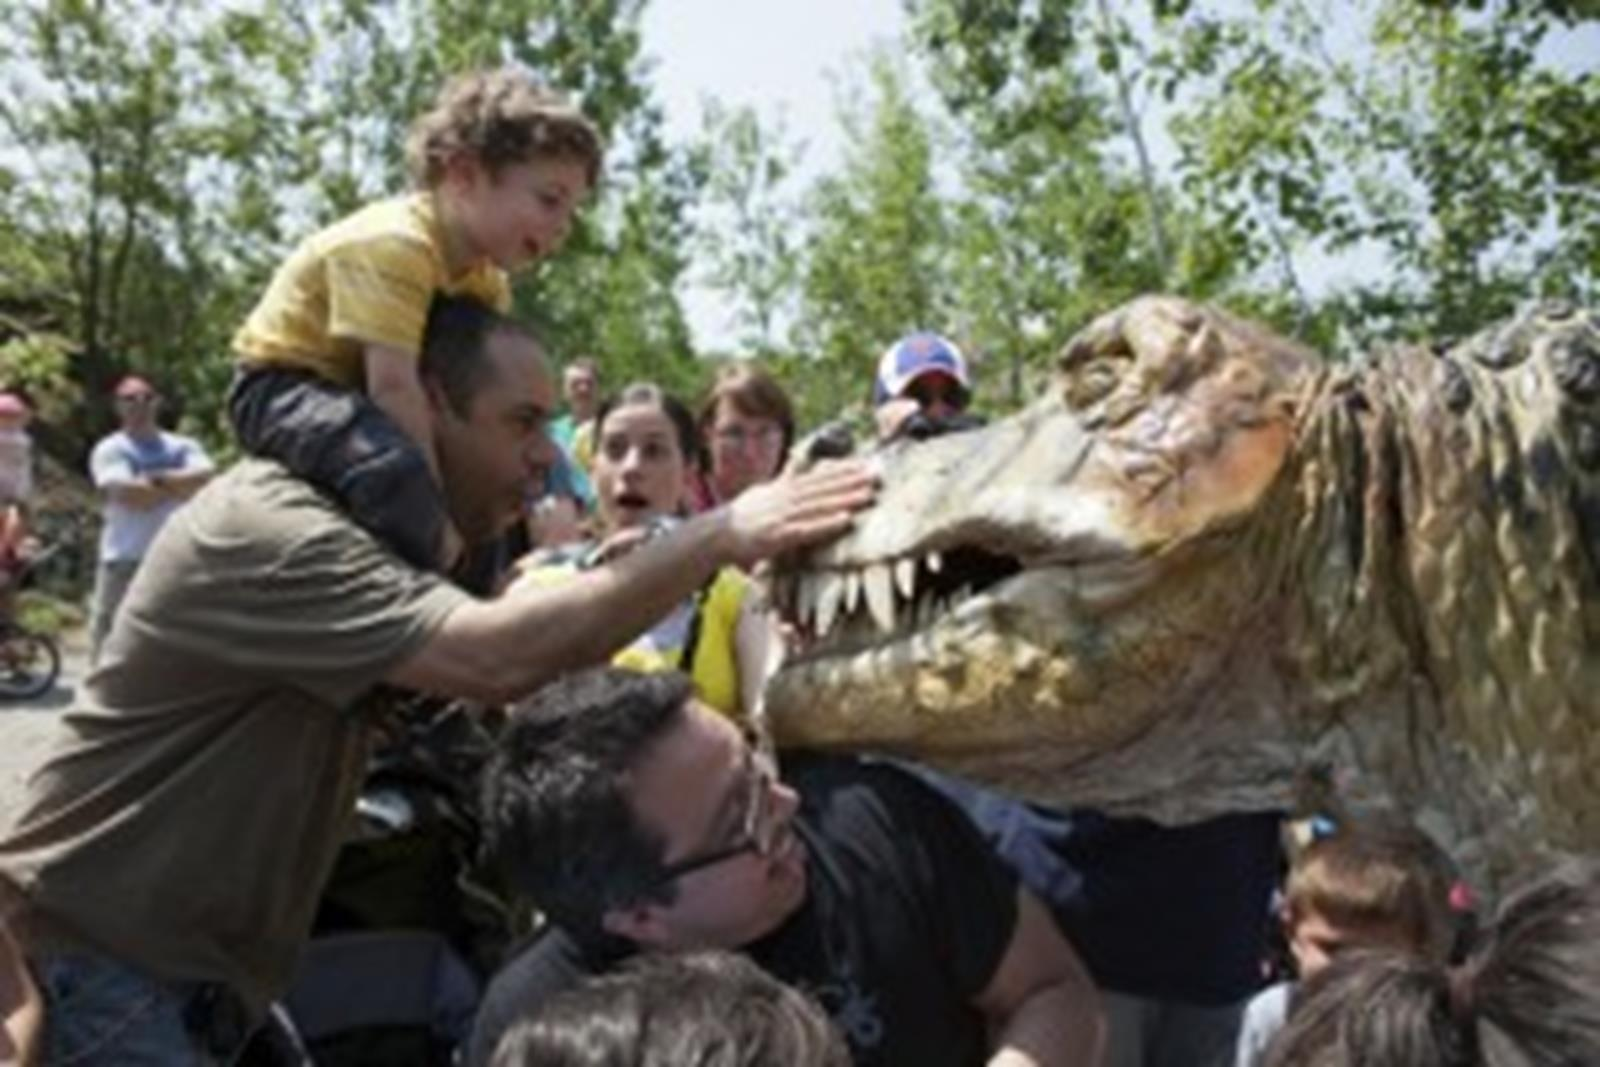 Petting the Mighty T-Rex. Puppets designed, created and provided by Erth. All rights reserved.